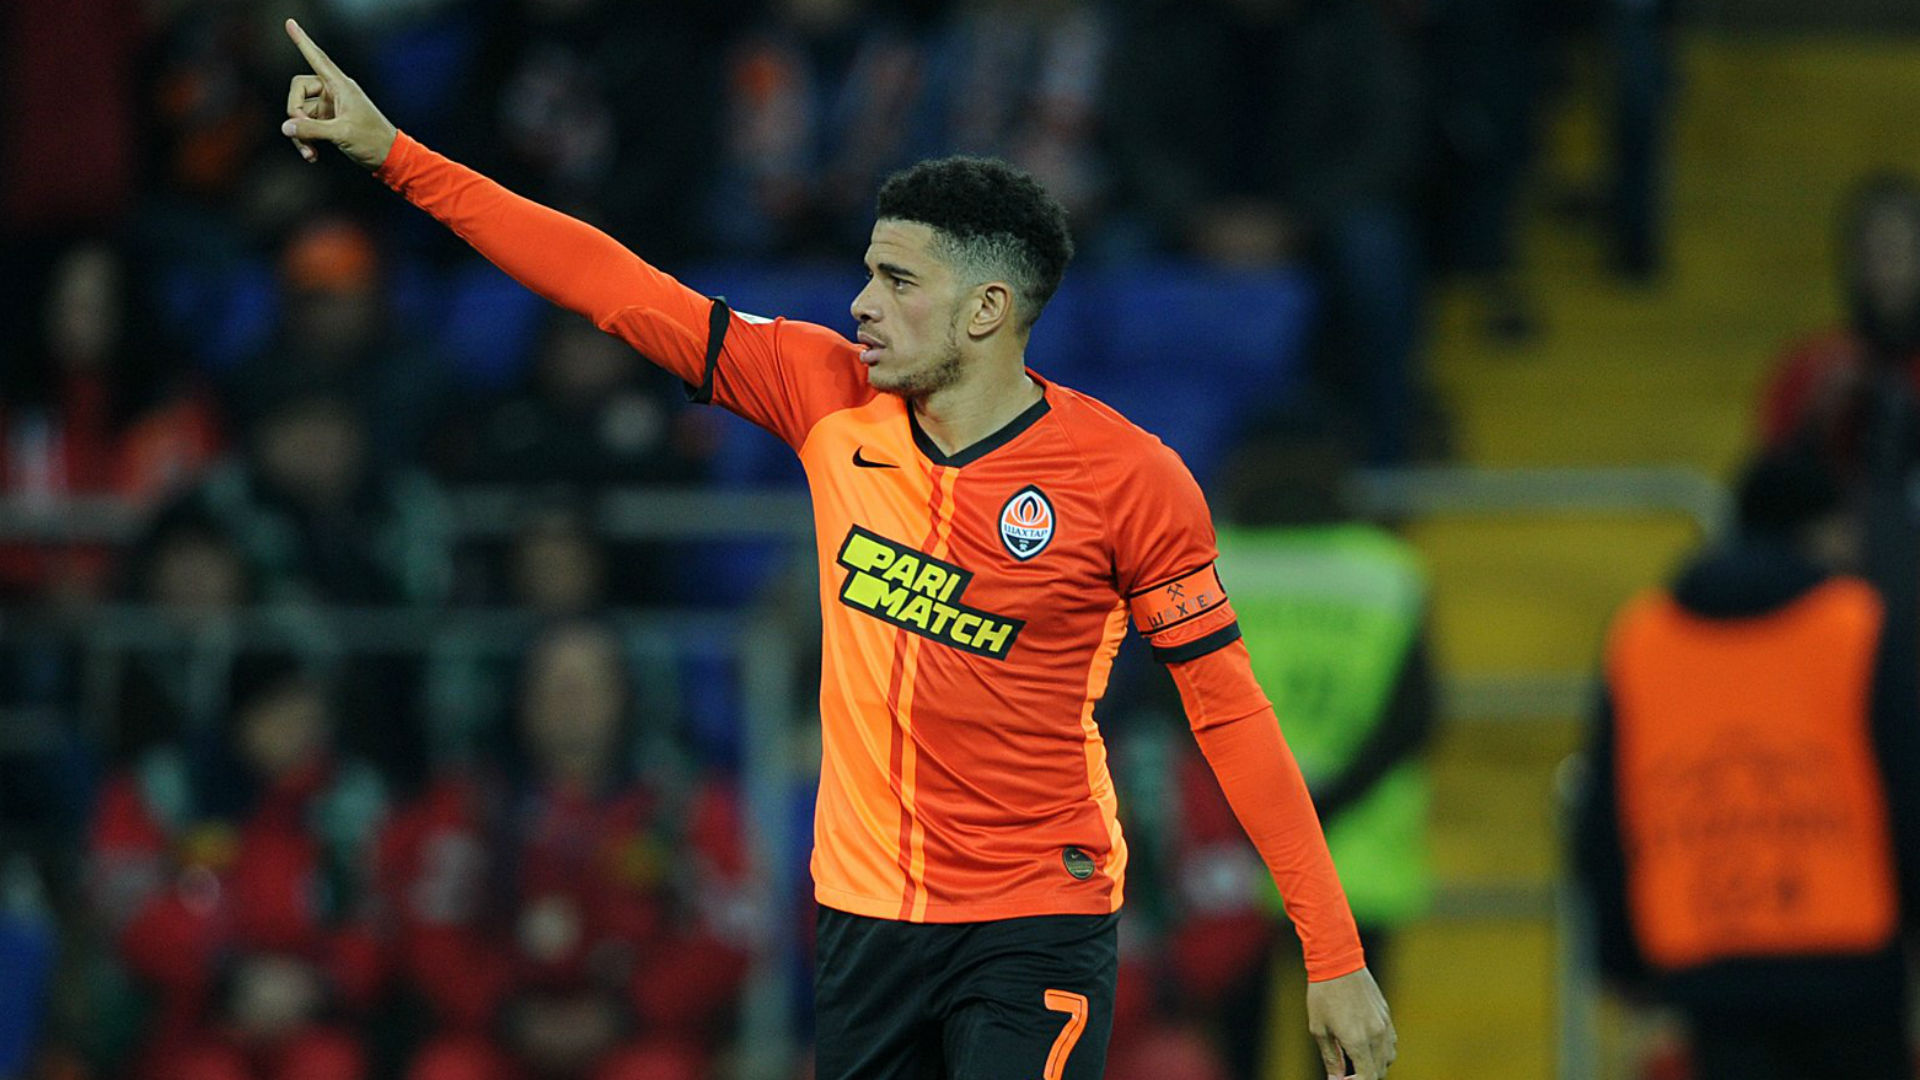 Shakhtar Donetsk star Taison sent off for reacting to racist abuse from Dynamo Kiev fans